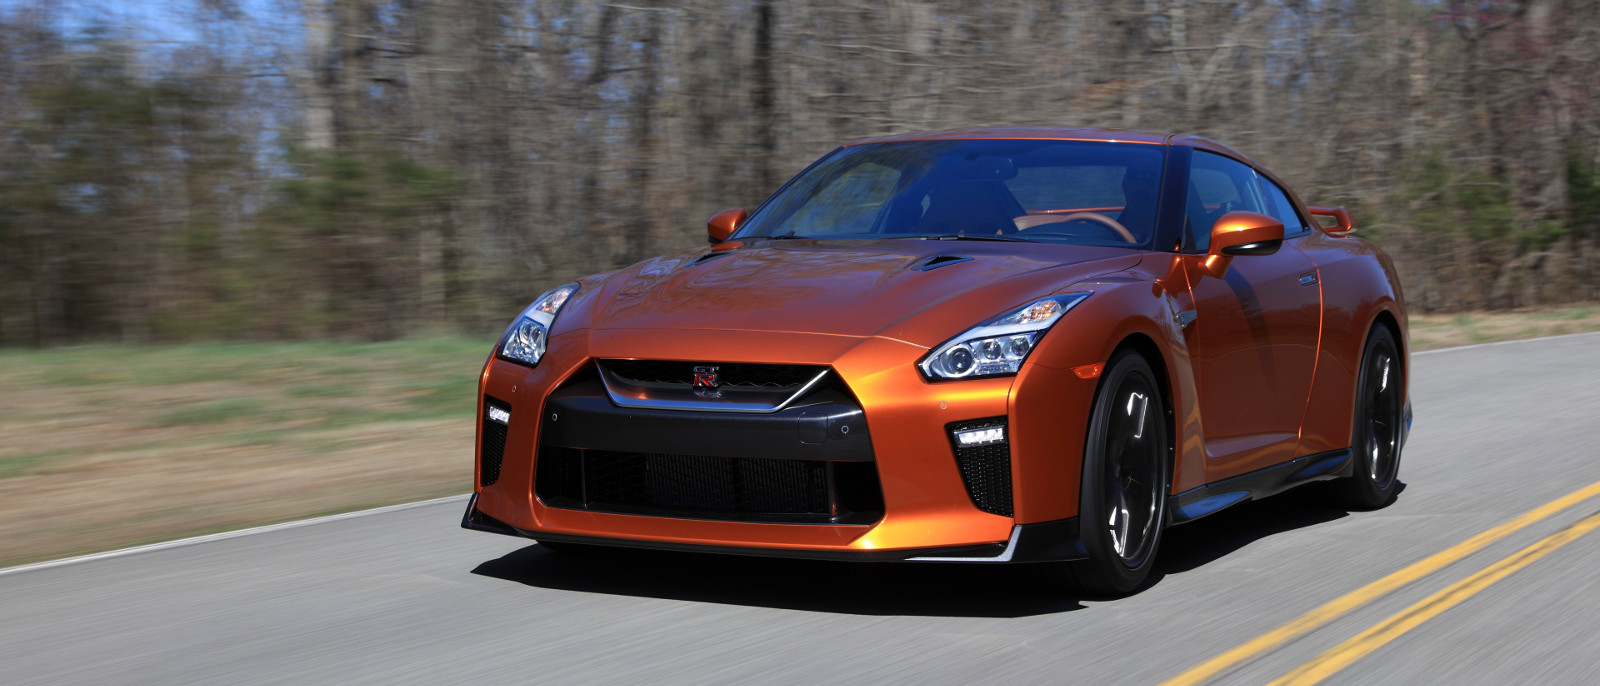 The 2017 Nissan Gt R Leaves Other Sports Cars In Dust Gtr Premium